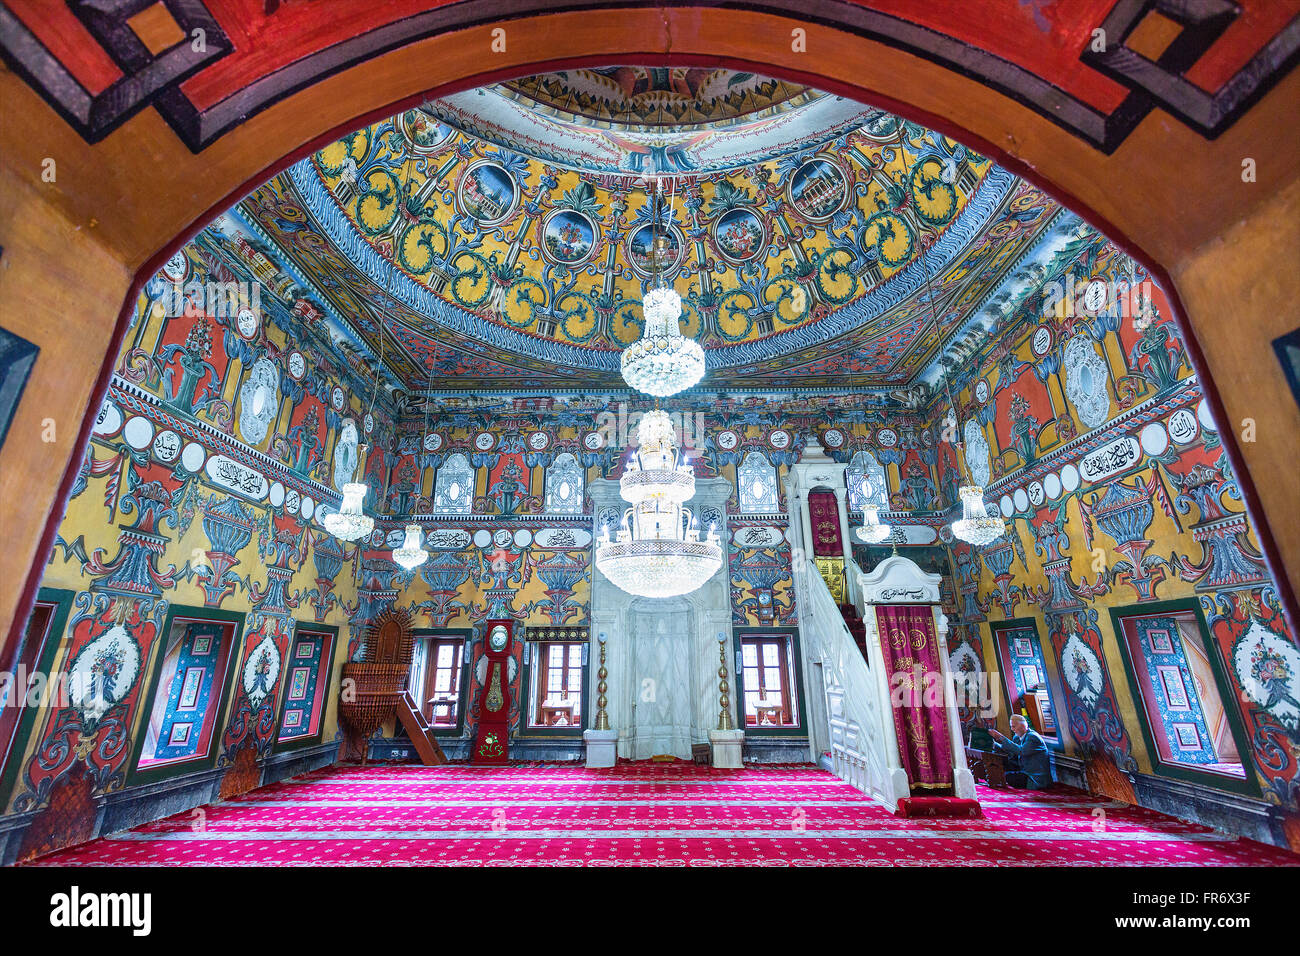 Republic of Macedonia, Tetovo, Ottoman mosque painted - Stock Image